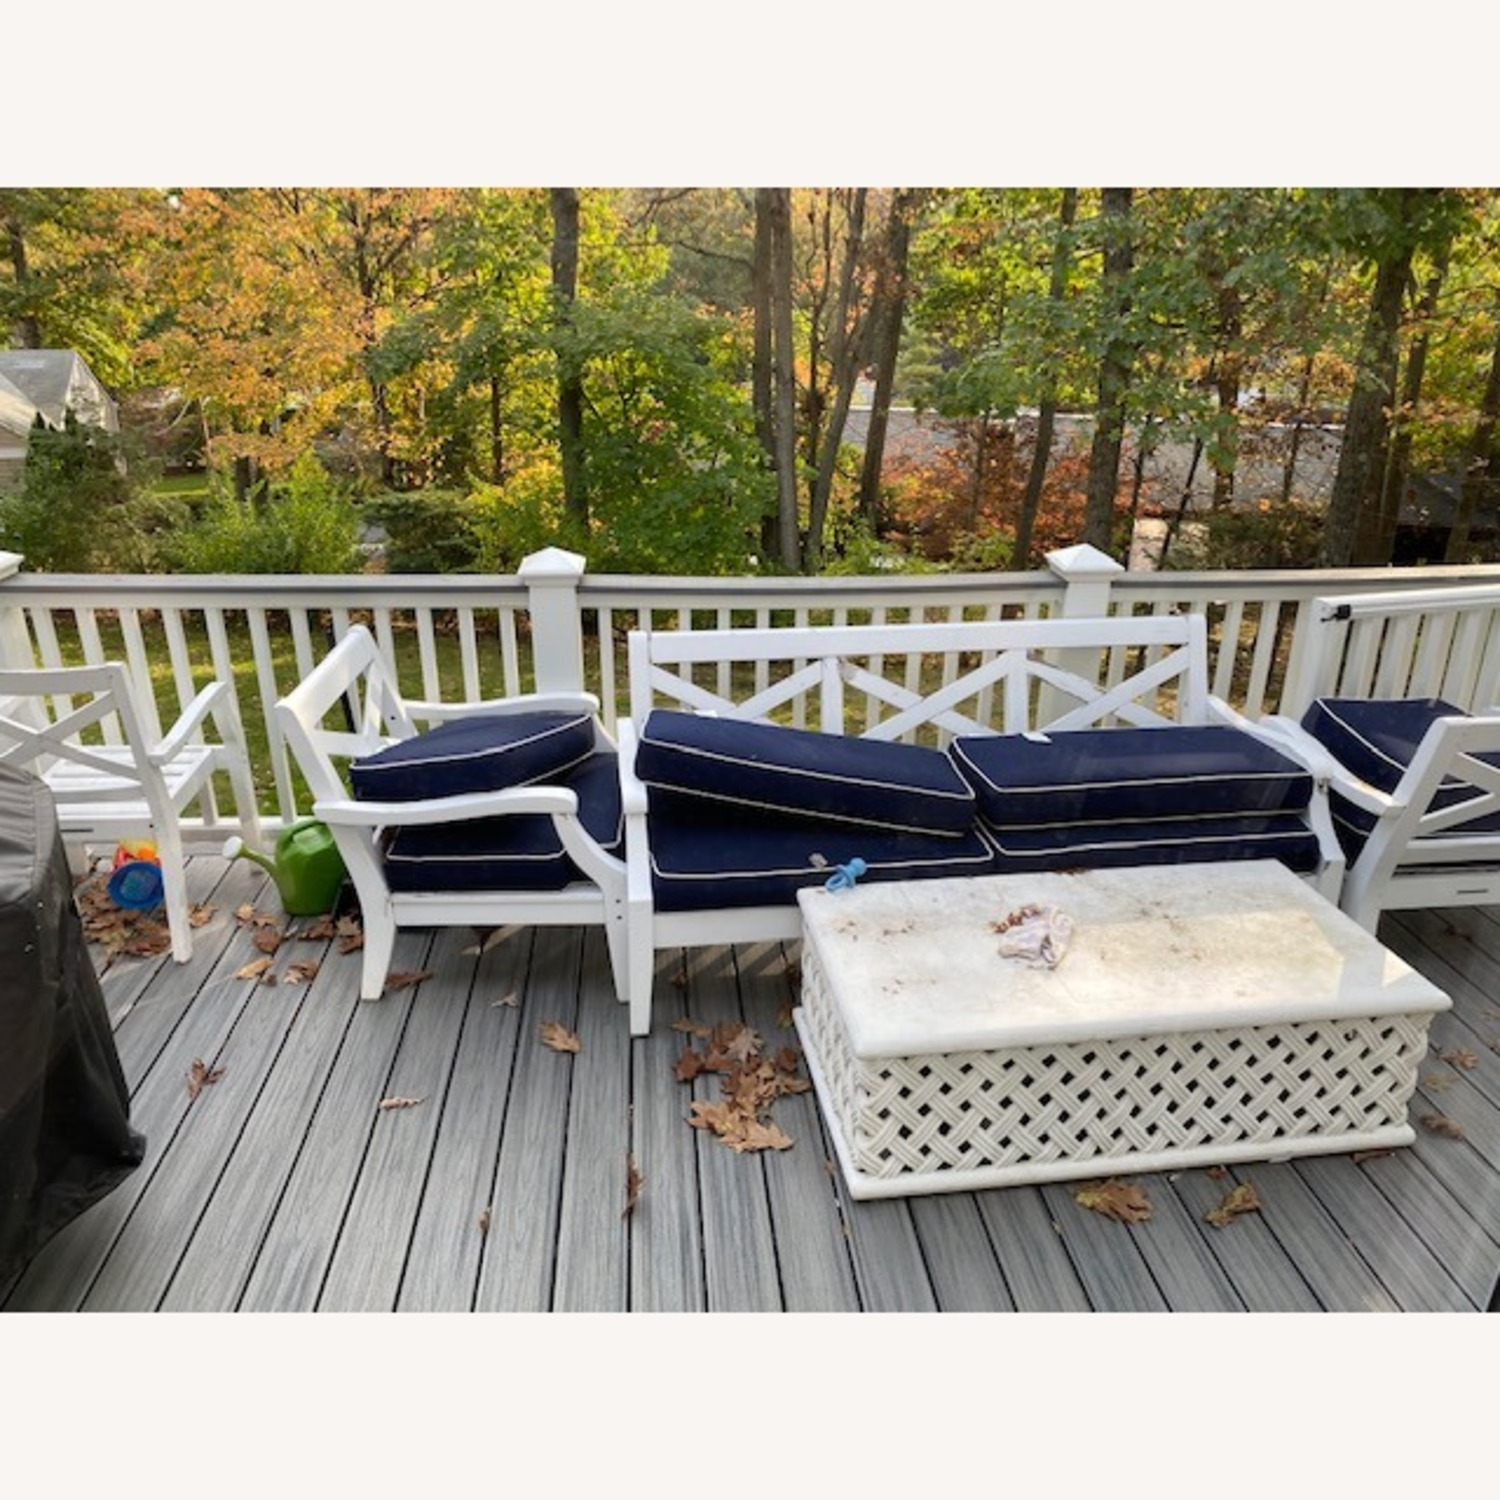 Pottery Barn Outdoor Furniture - image-2